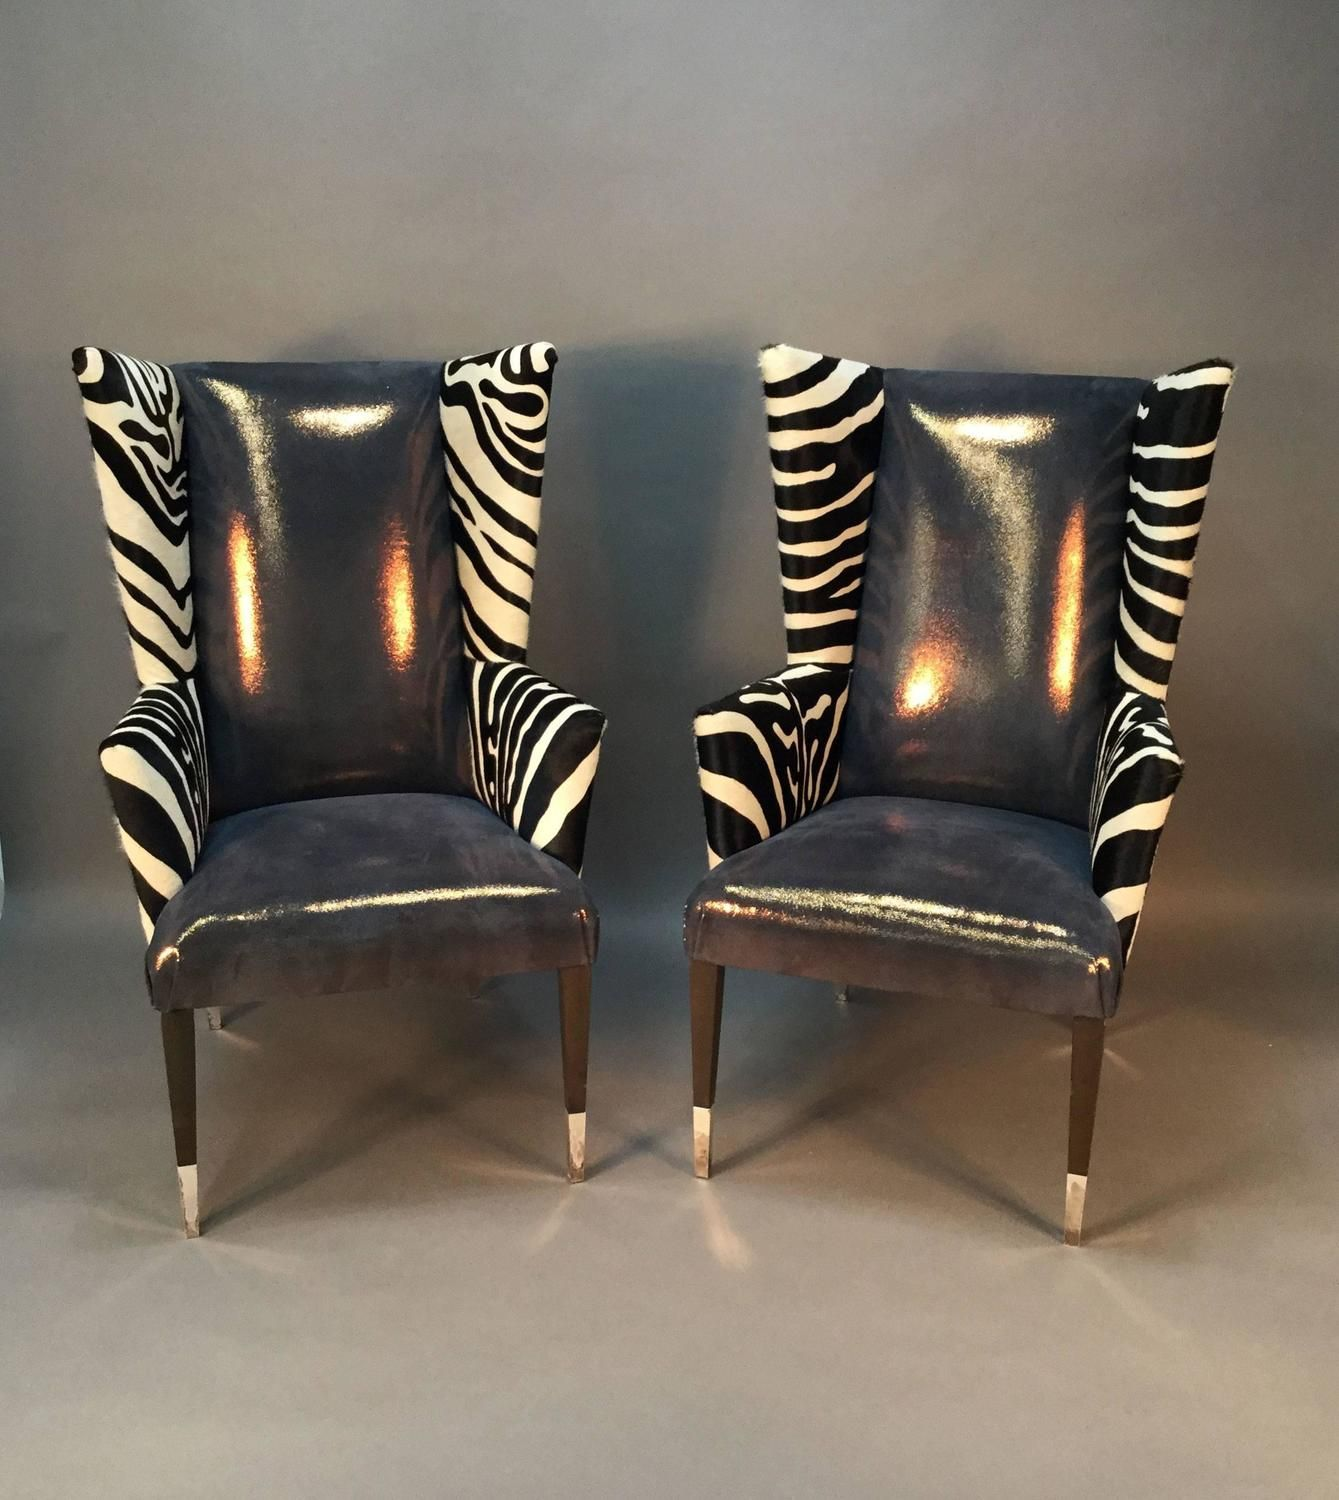 Delicieux Pair Of Modern Wingback Chairs In Zebra Printed Cowhide And Faux Shagreen.  Available From Fairfield